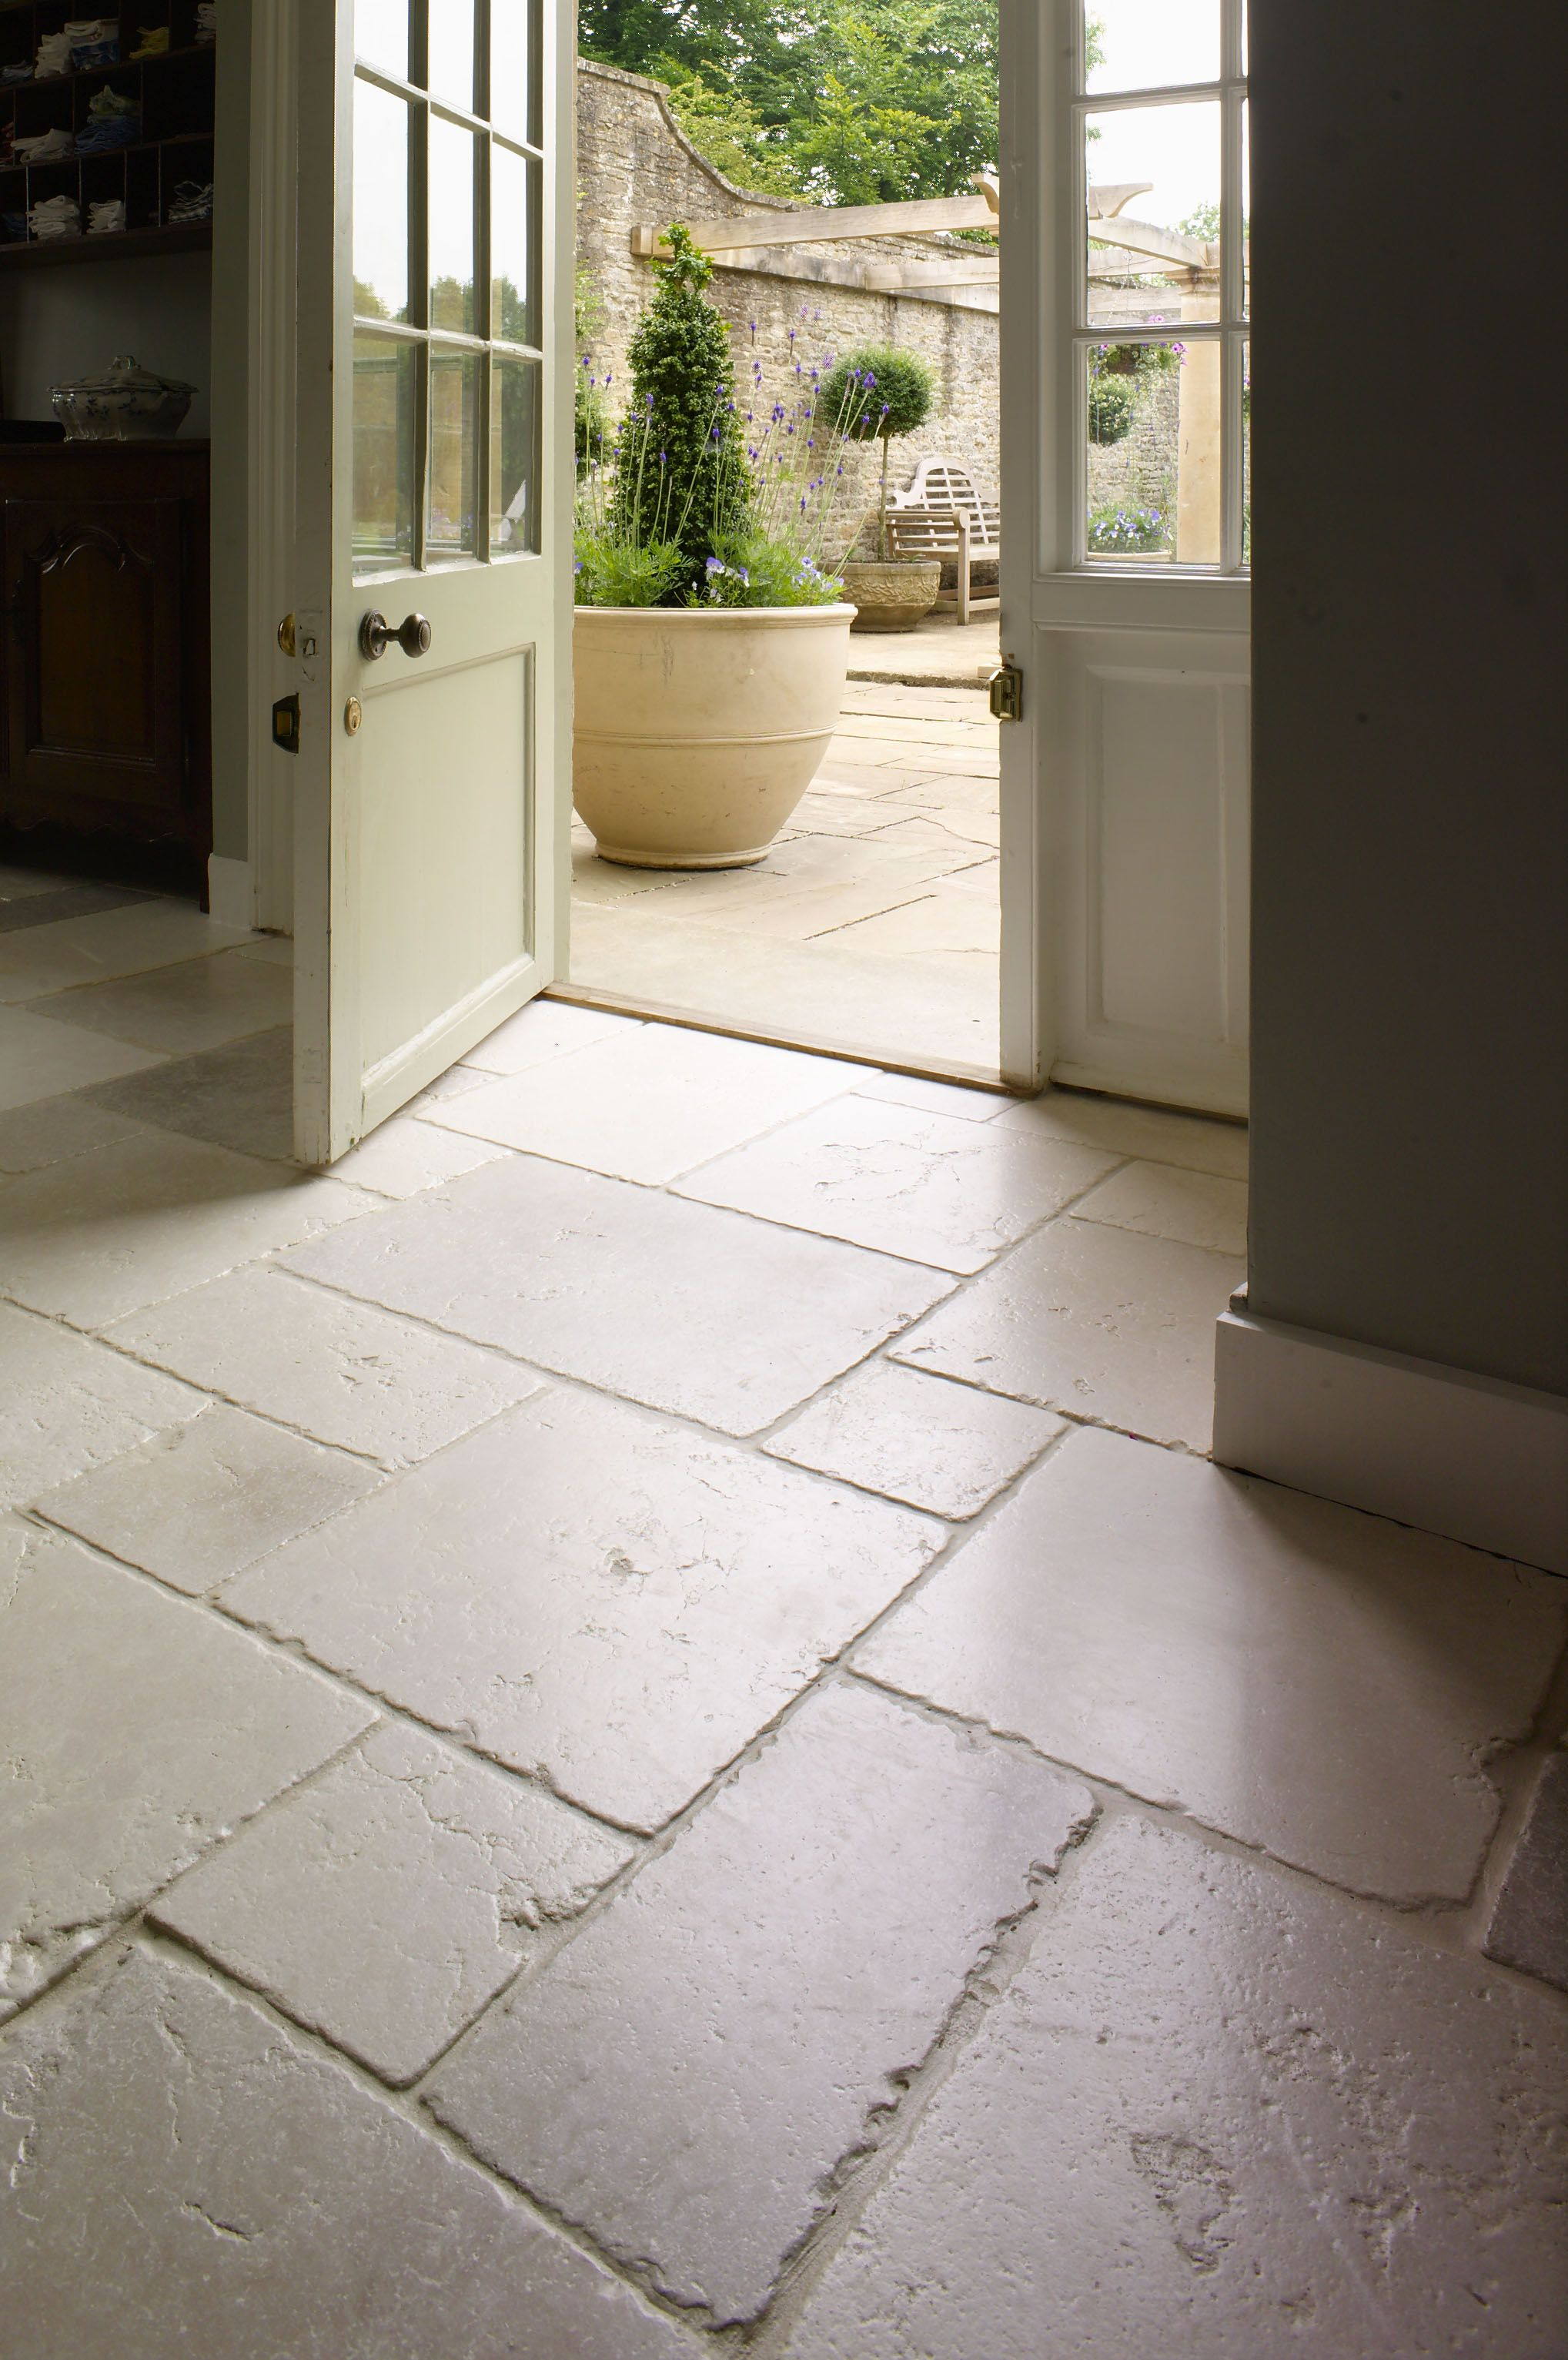 St arbois tumbled limestone beautifully aged a stylish and st arbois tumbled limestone floor a stylish and popular tumbled limestone with delicate tones of beige pale greys creams and the occasional blush pink dailygadgetfo Images